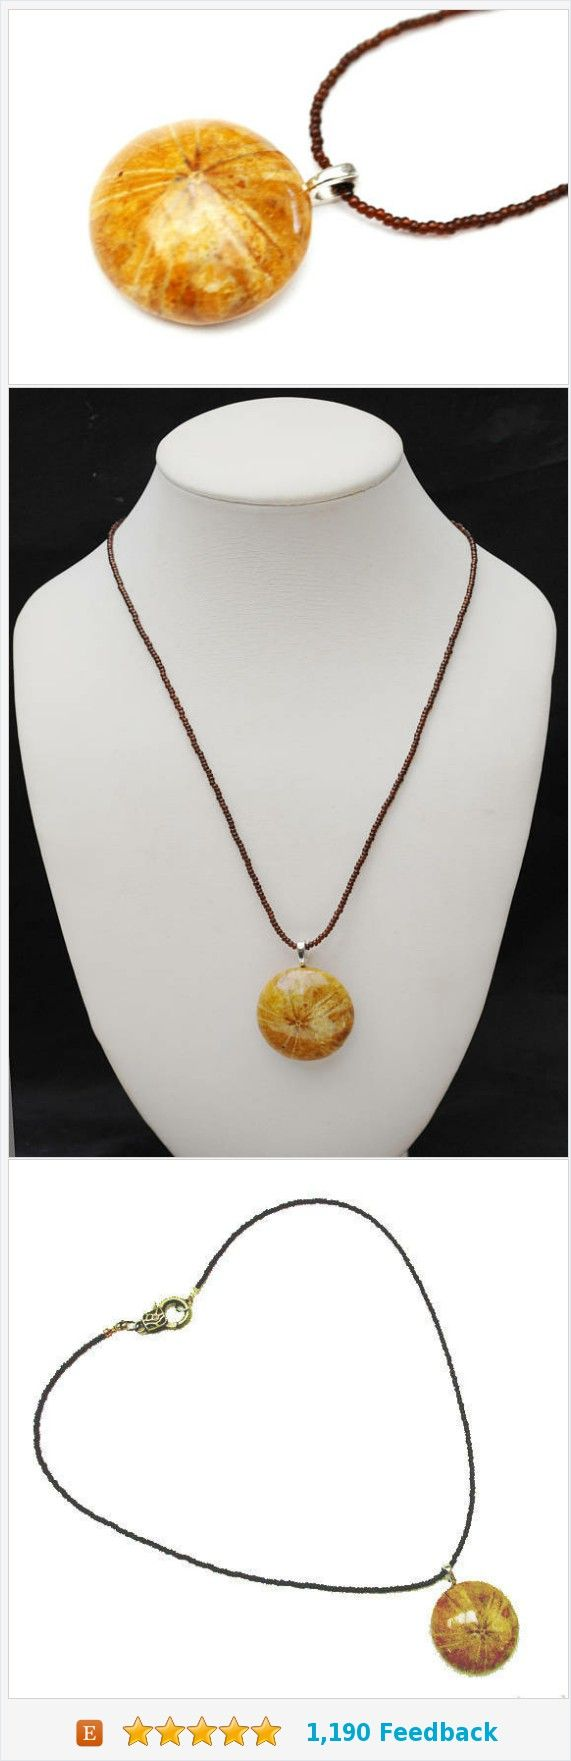 fossil sand dollar necklace - echinoderm pendant - Brownd domed round Shell- handmade bead necklace https://www.etsy.com/serendipitytreasure/listing/232944587/fossil-sand-dollar-necklace-echinoderm?ref=listing_published_alert